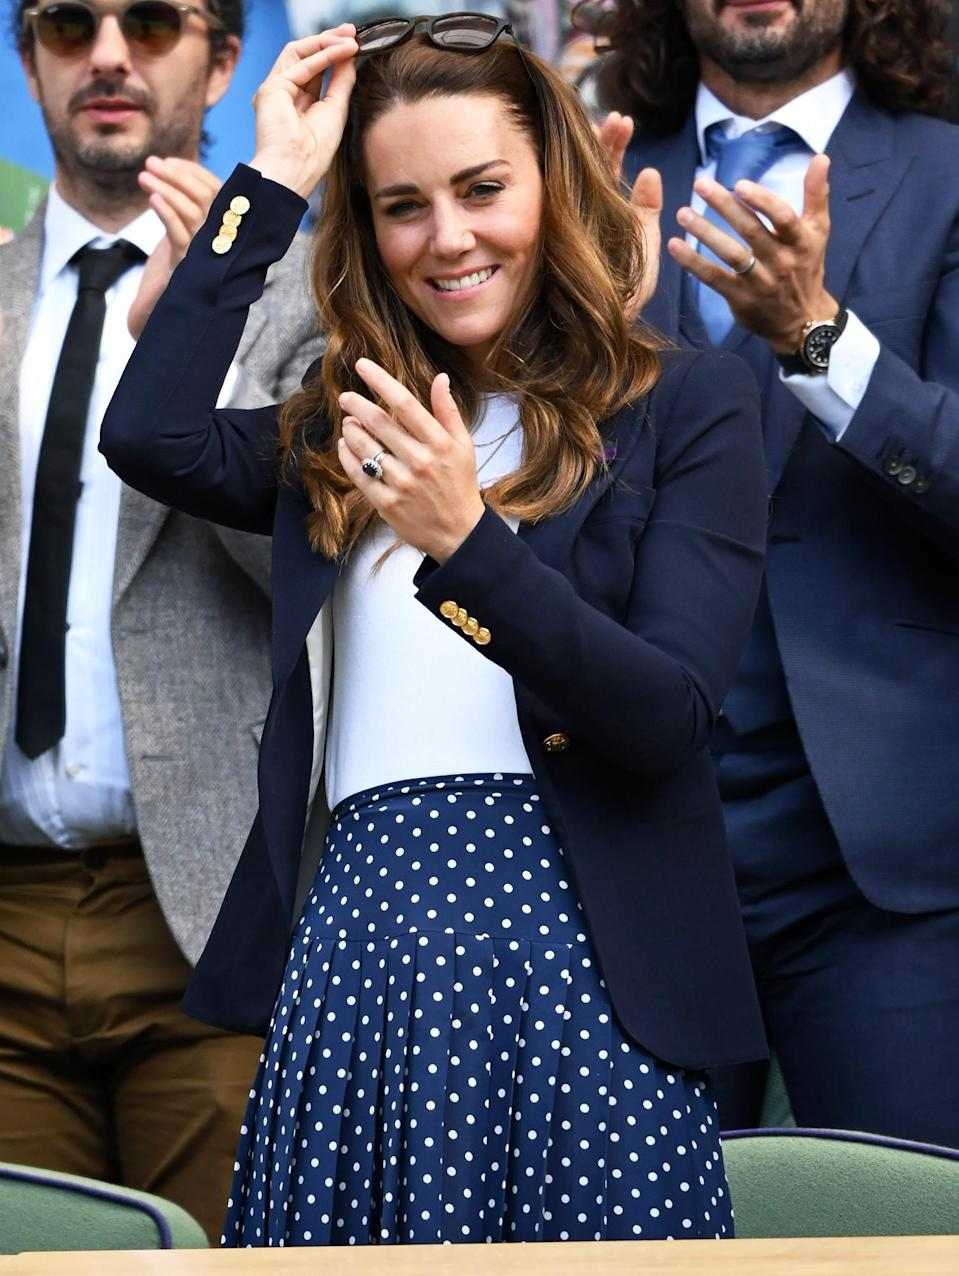 <p>Kate Middleton removes her sunglasses to get a good look at the Wimbledon players in London, England.</p>